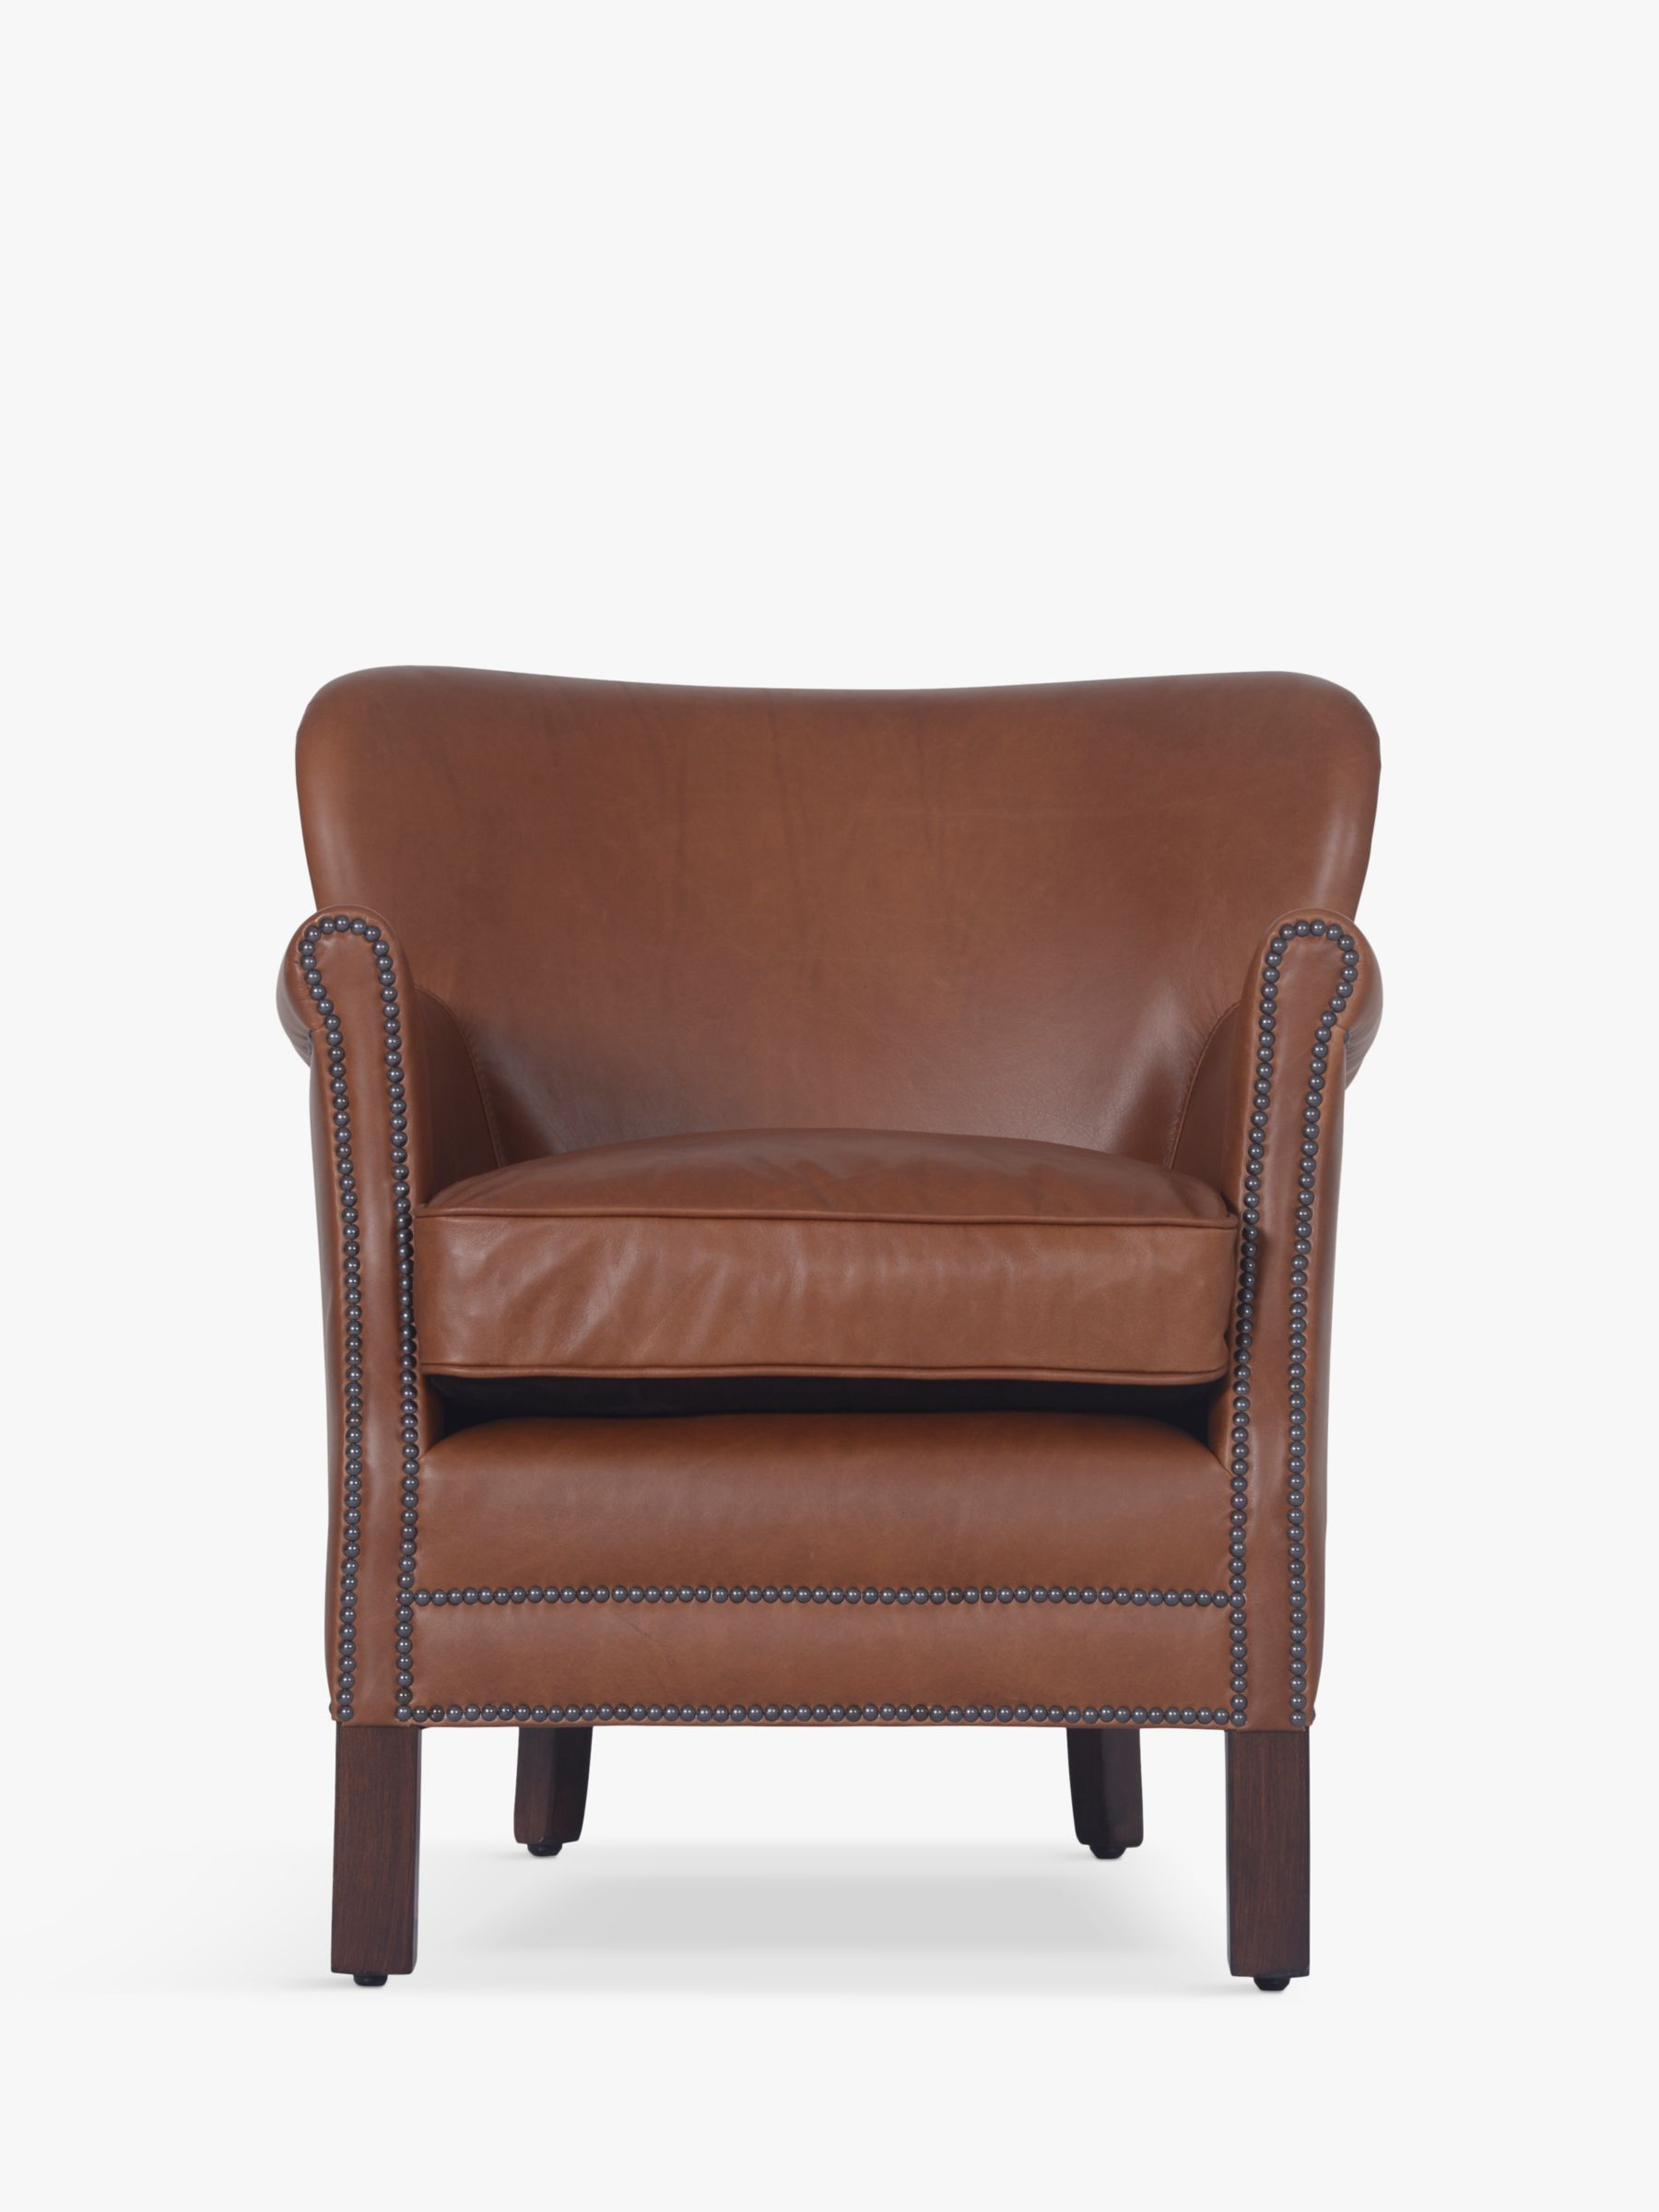 Halo Halo Little Professor Aniline Leather Chair, Riders Nut